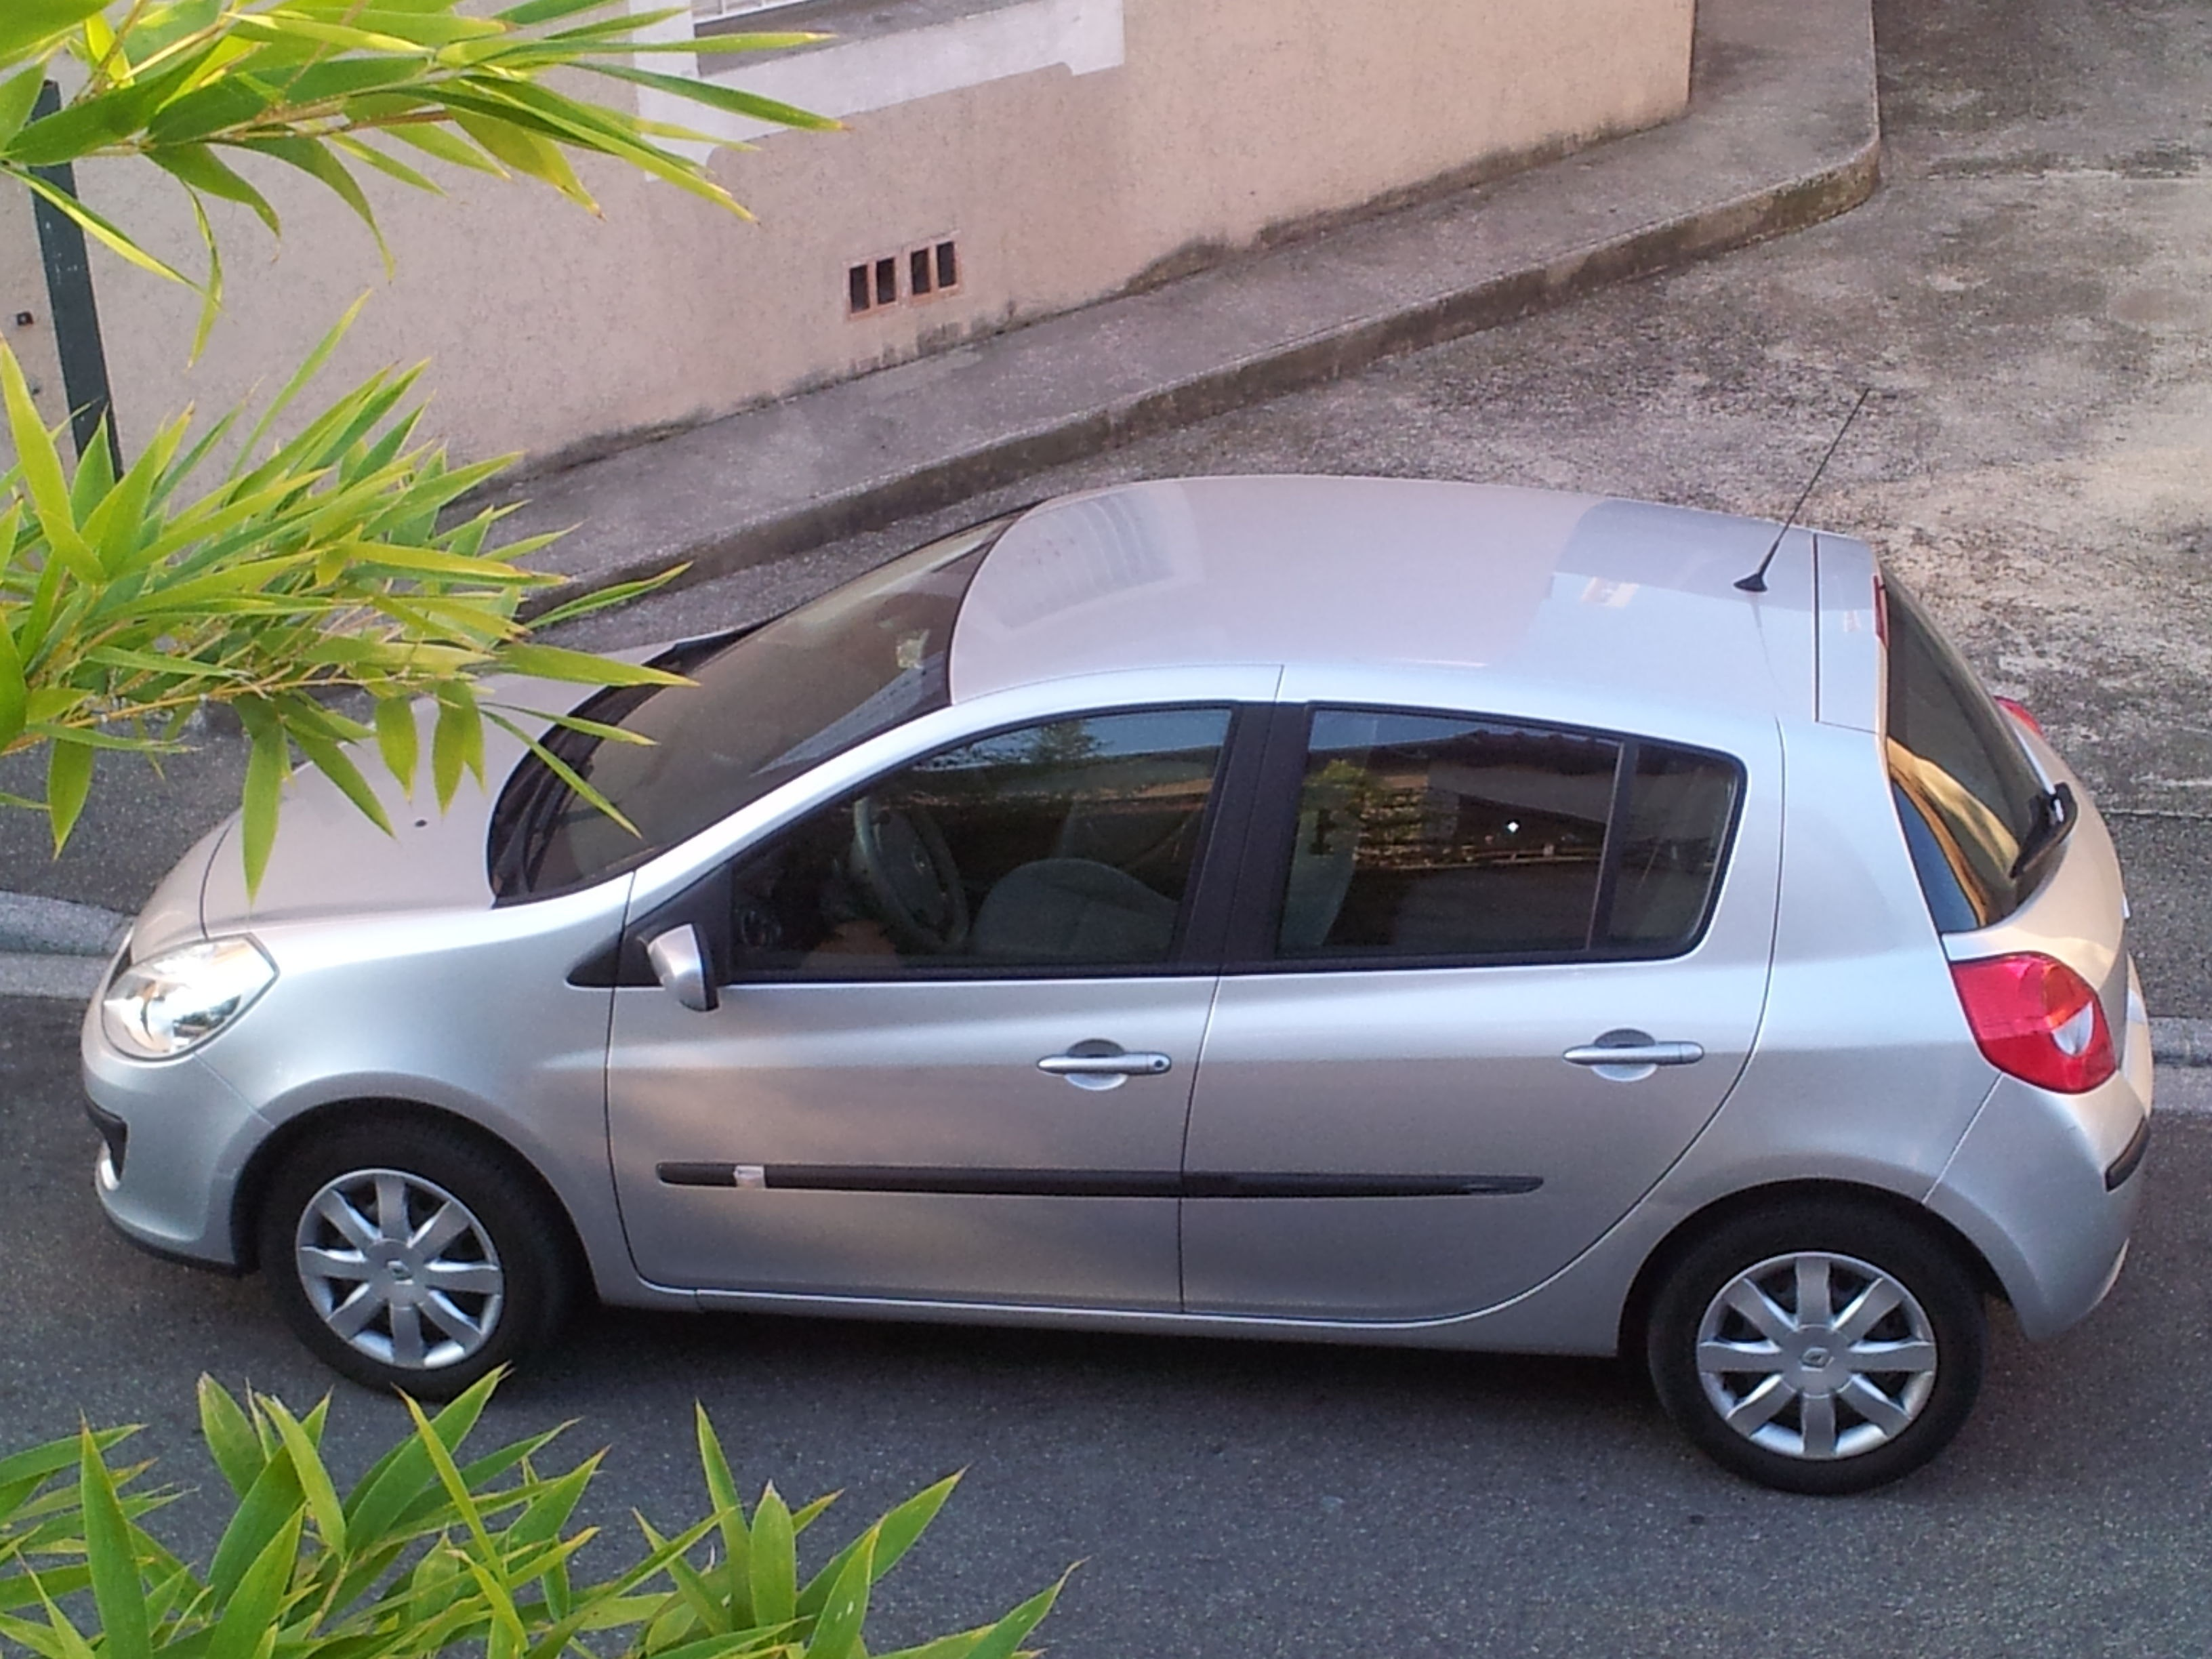 Renault Clio III, 2007, Essence, automatique